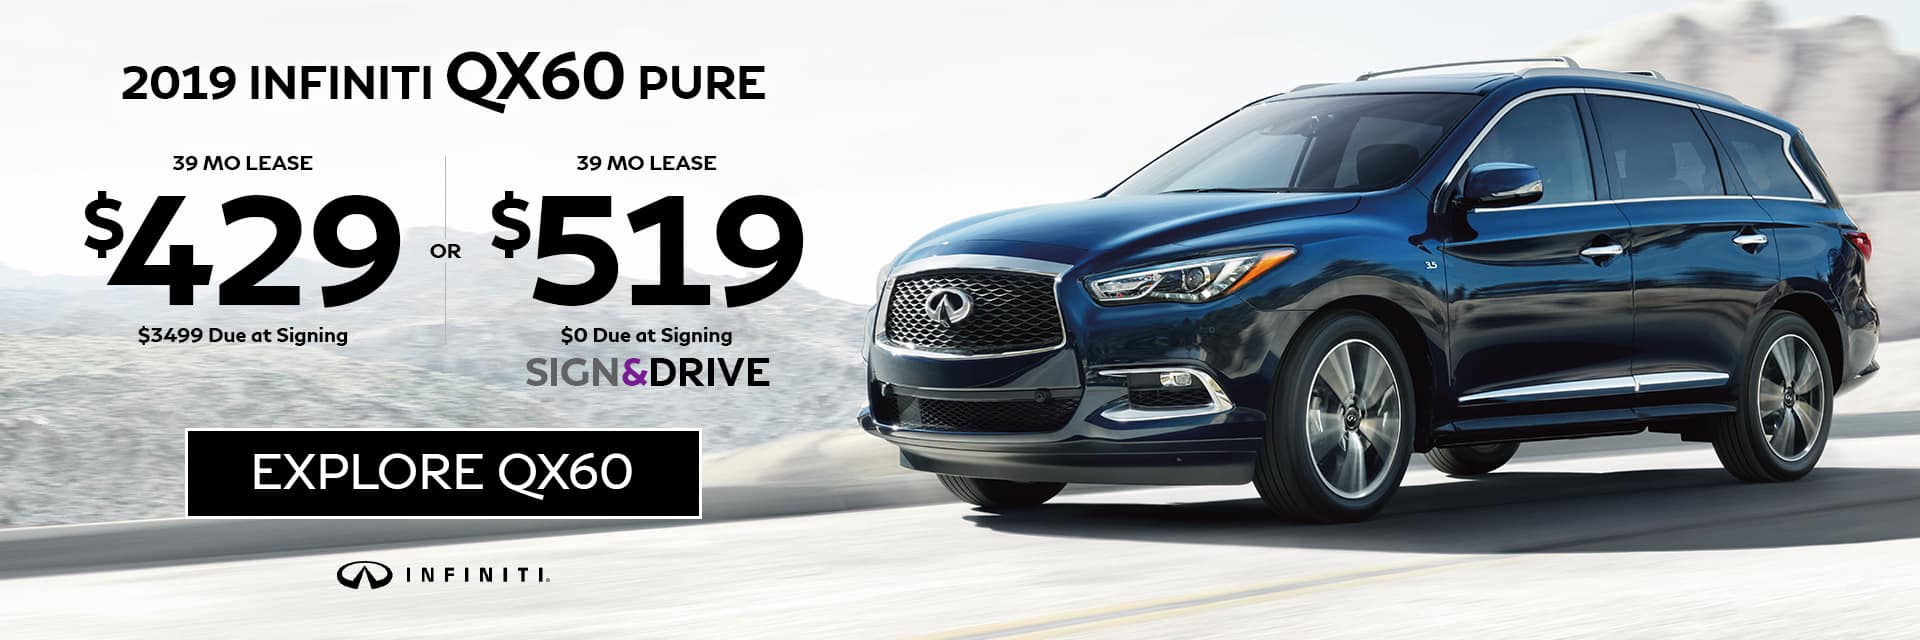 2019 INFINITI QX60 Special Offer